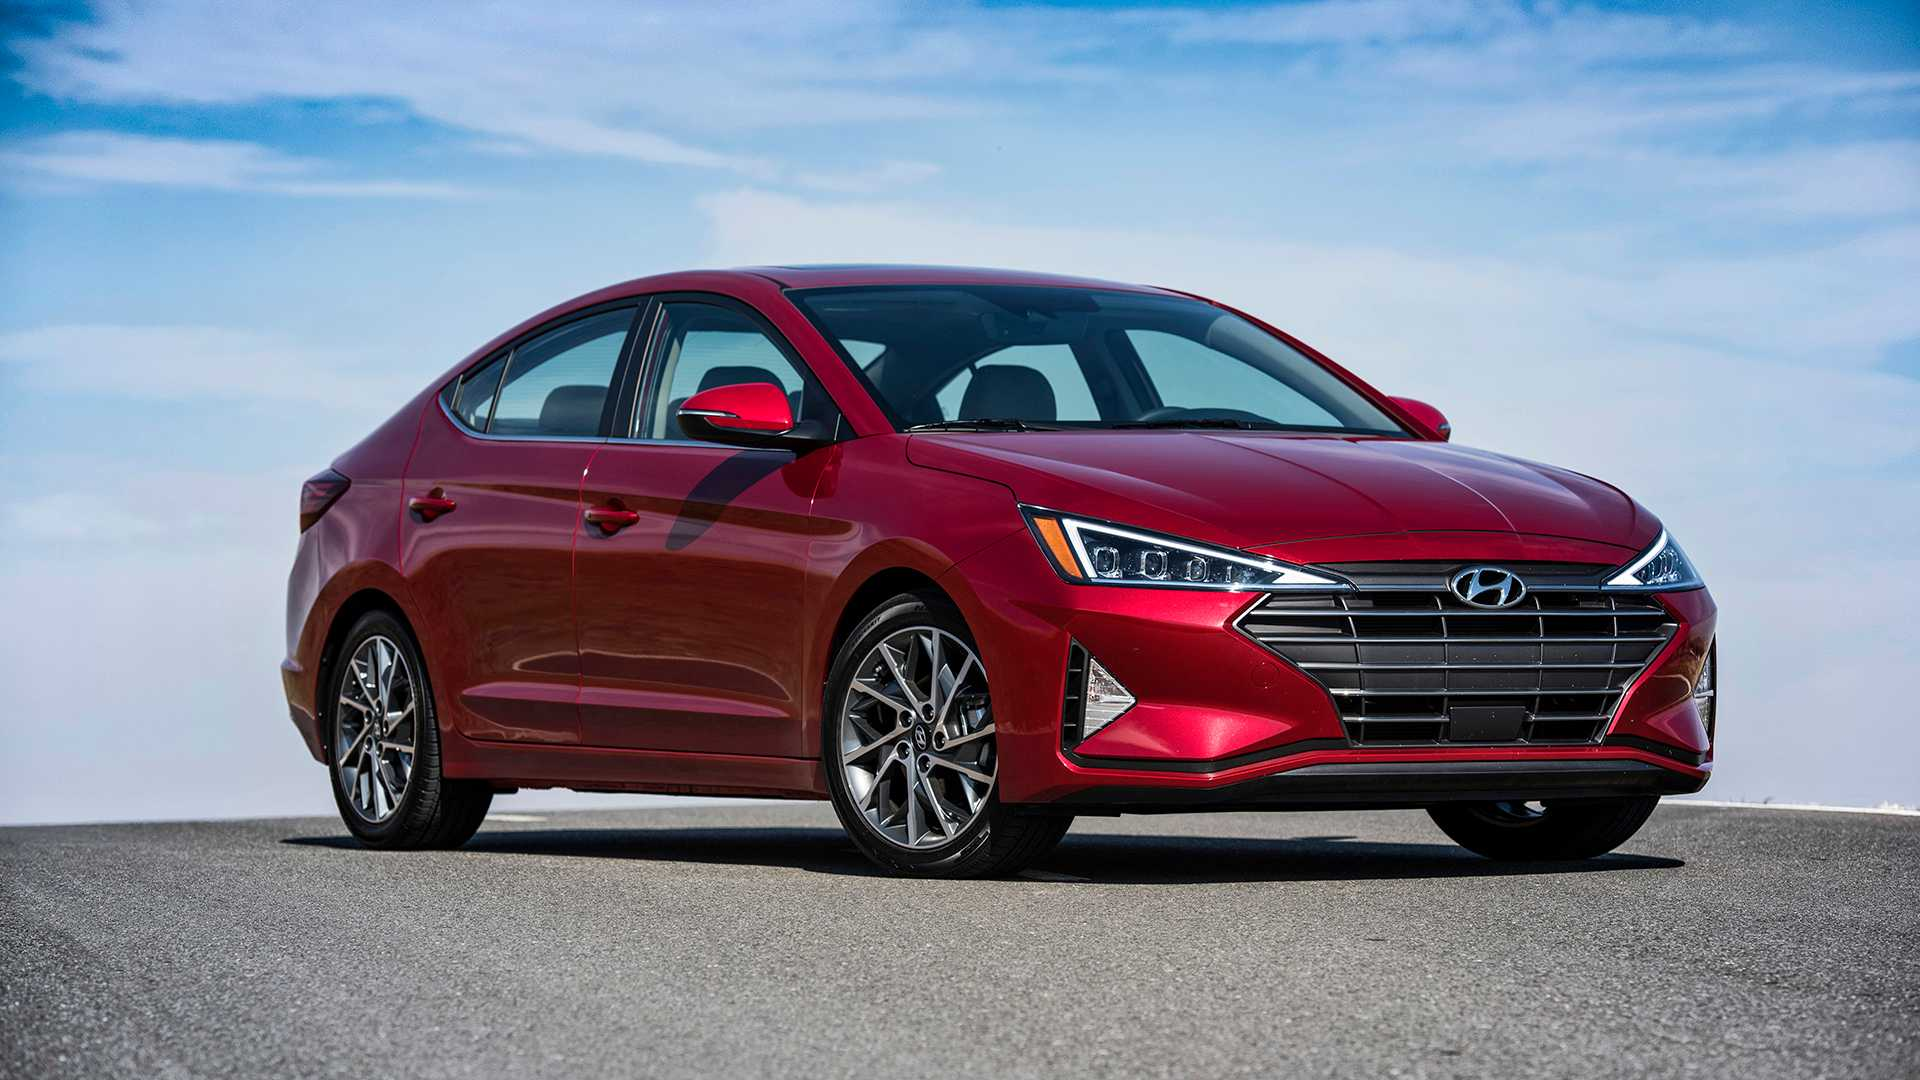 82 All New 2019 Hyundai Elantra Sedan New Model and Performance